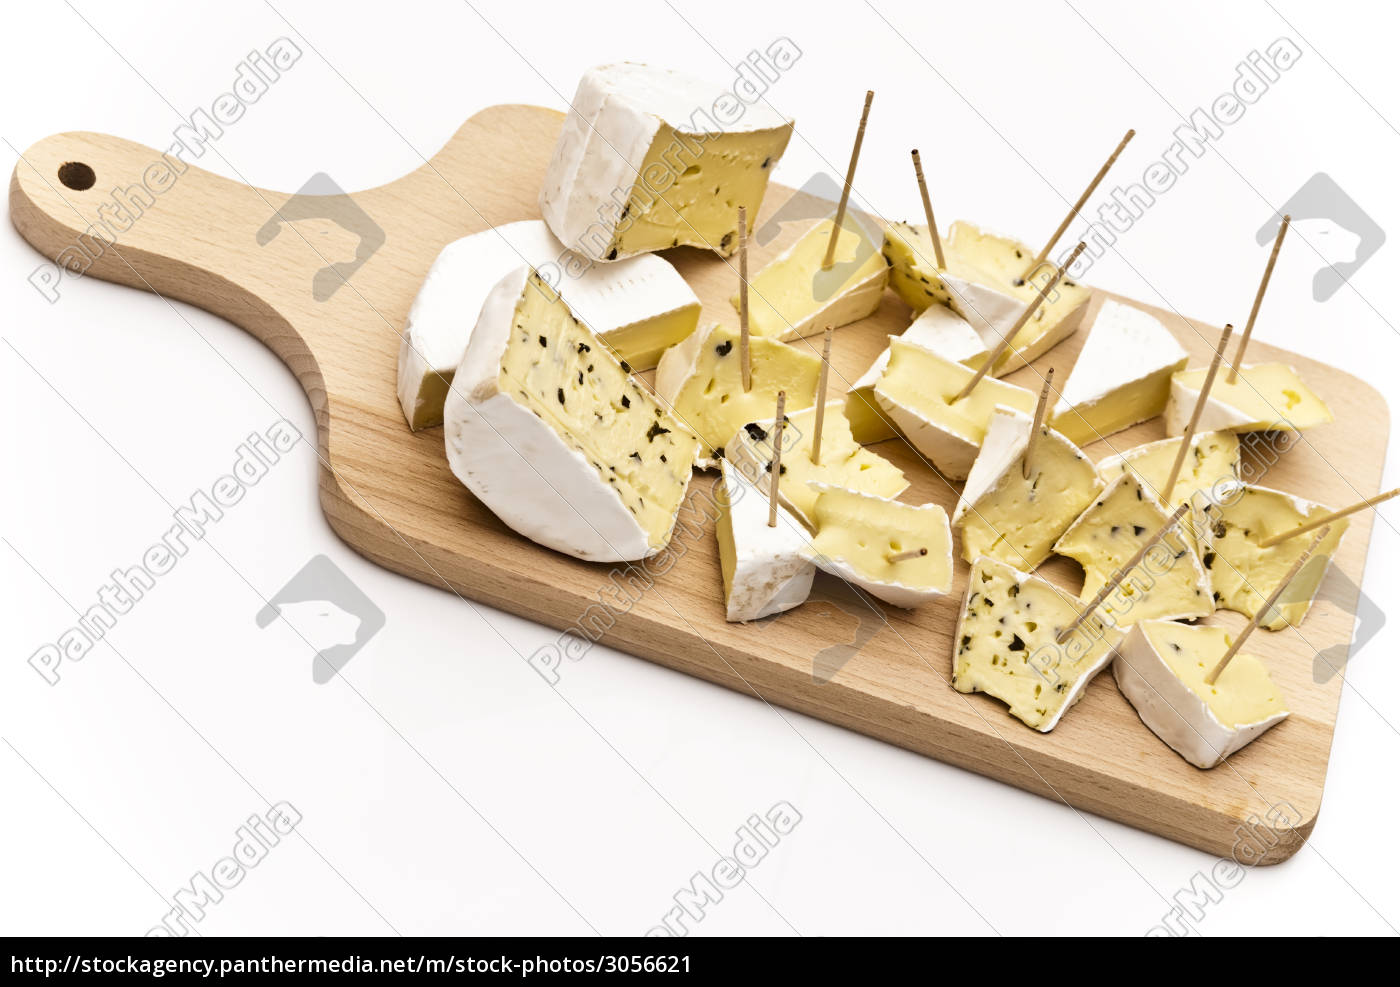 blue, cheese, on, wooden, board - 3056621